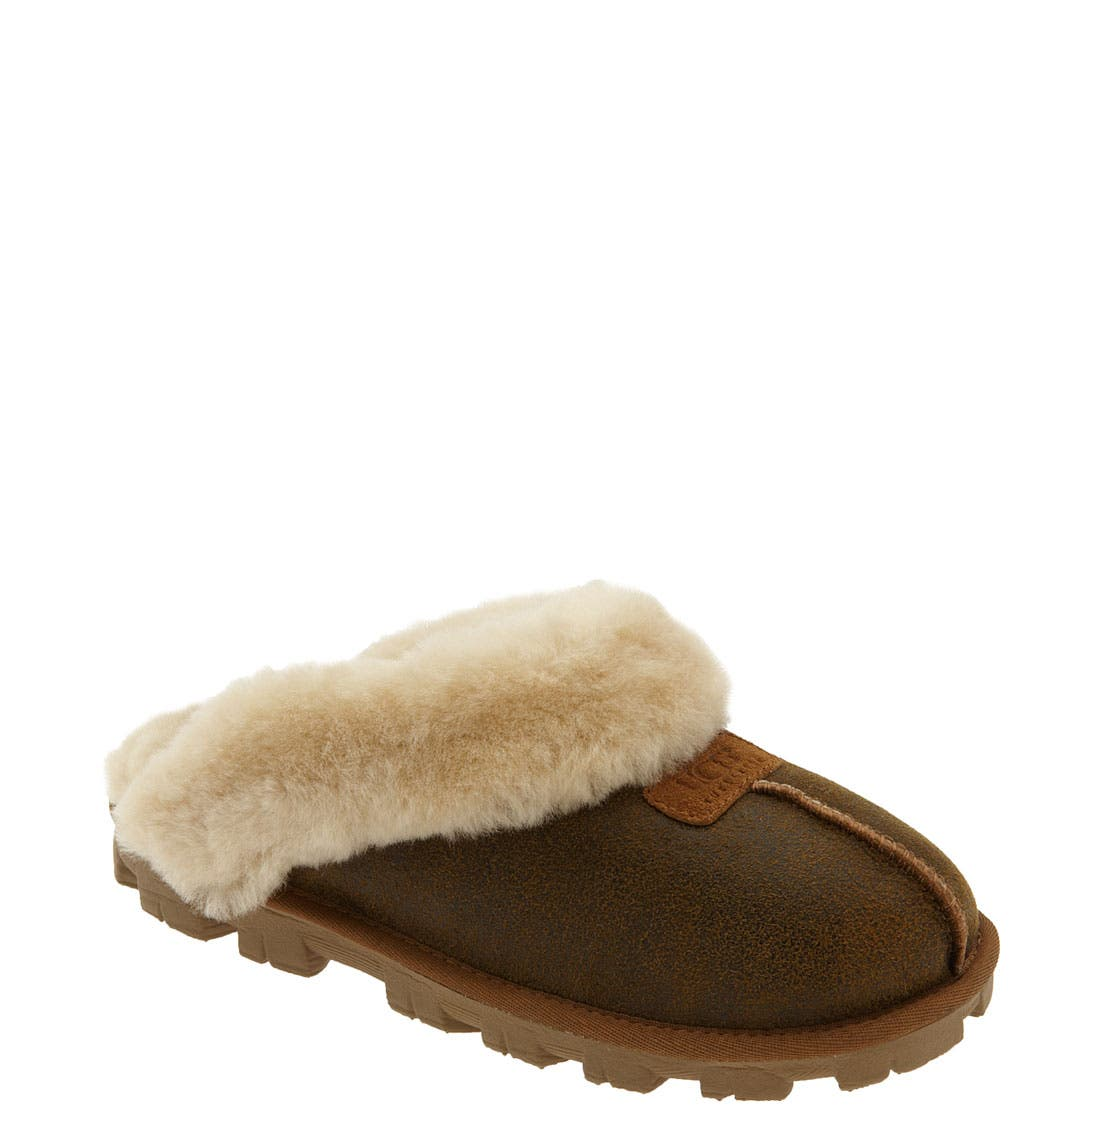 Alternate Image 1 Selected - UGG® Genuine Shearling Slipper (Women)